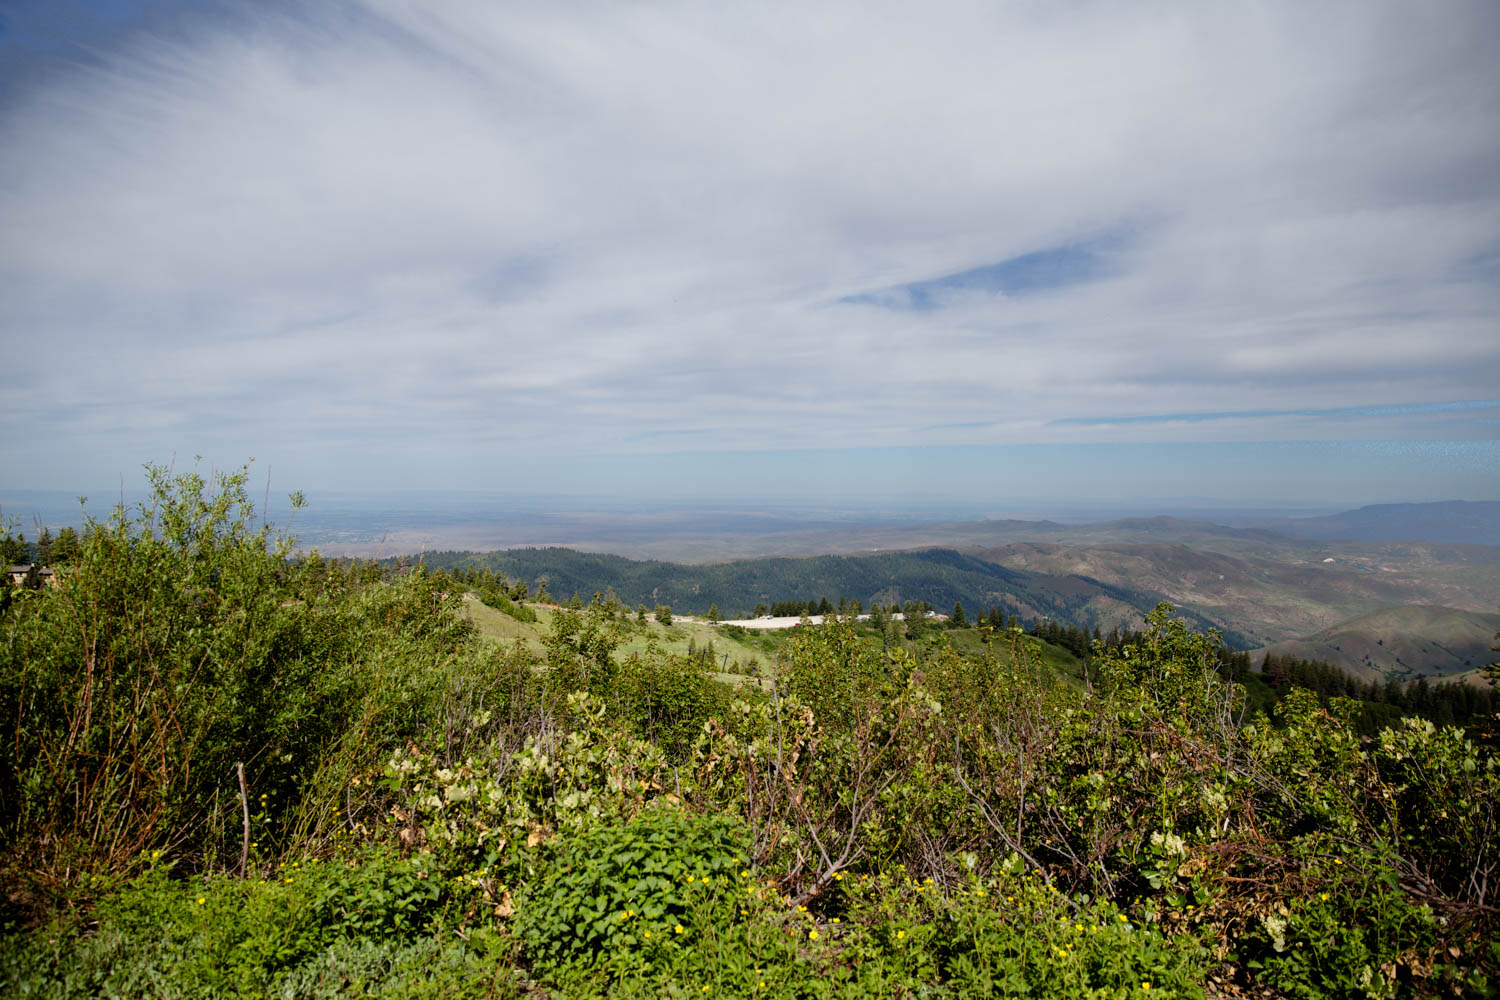 View of the foothills from Bogus Basin while hike with family in the summer